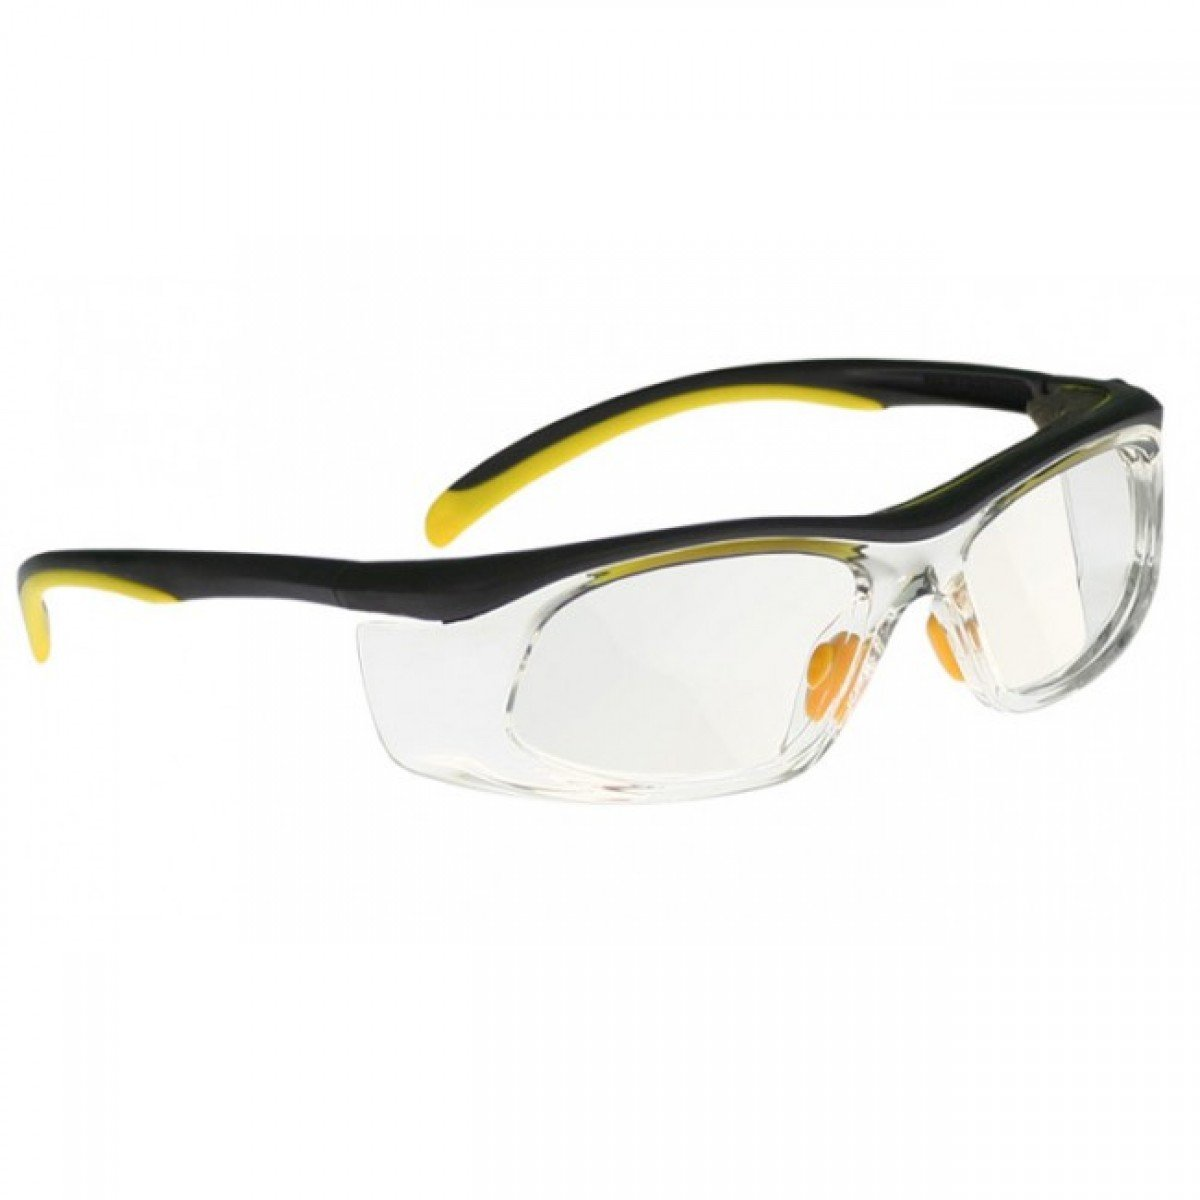 Safety Reading Glasses (+1.25) Full Lens Readers In Plastic Safety Frame